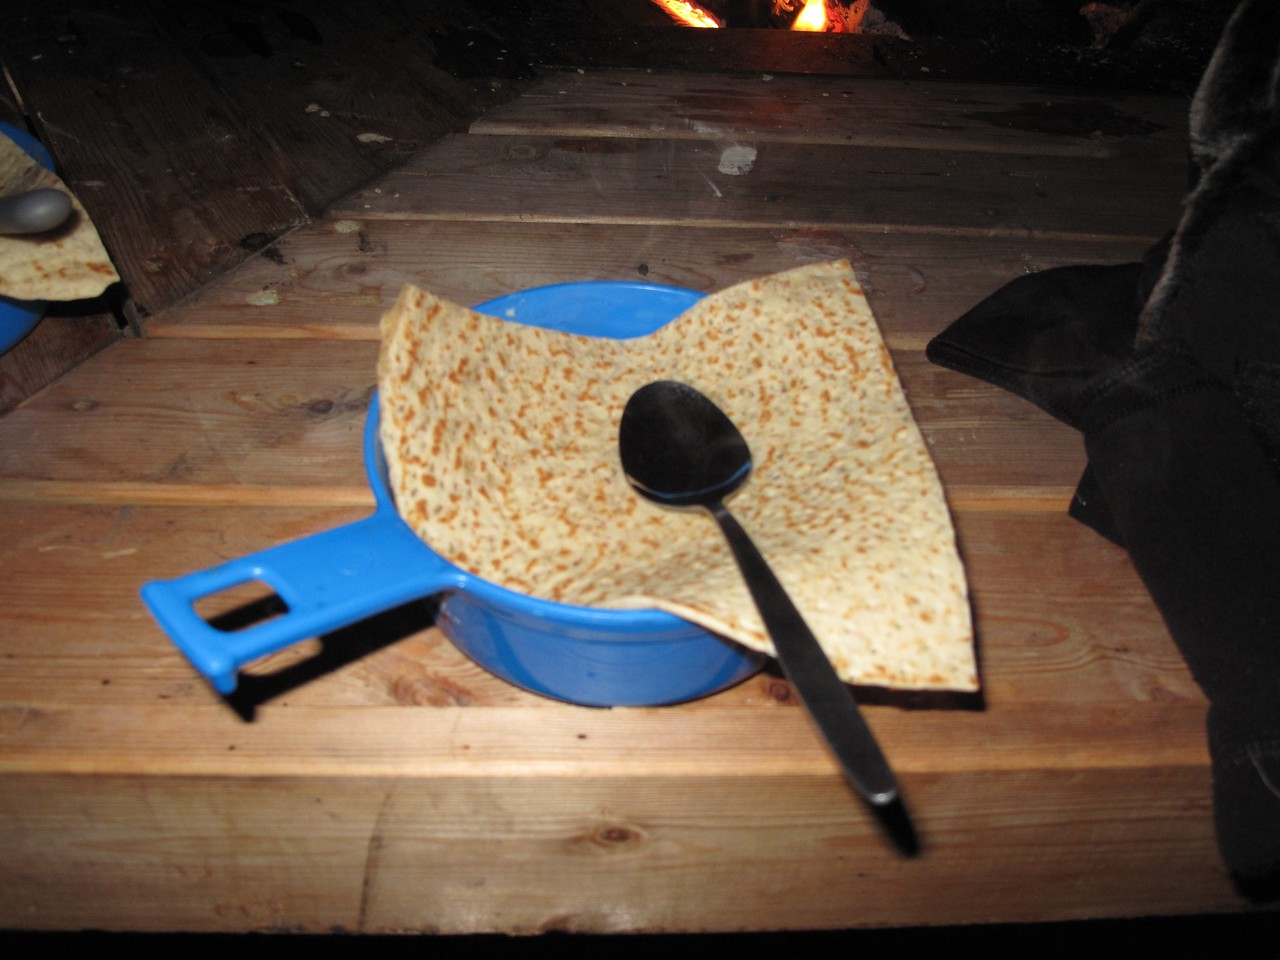 Along with the stew, we'll hae some lefse or unleavened bread.